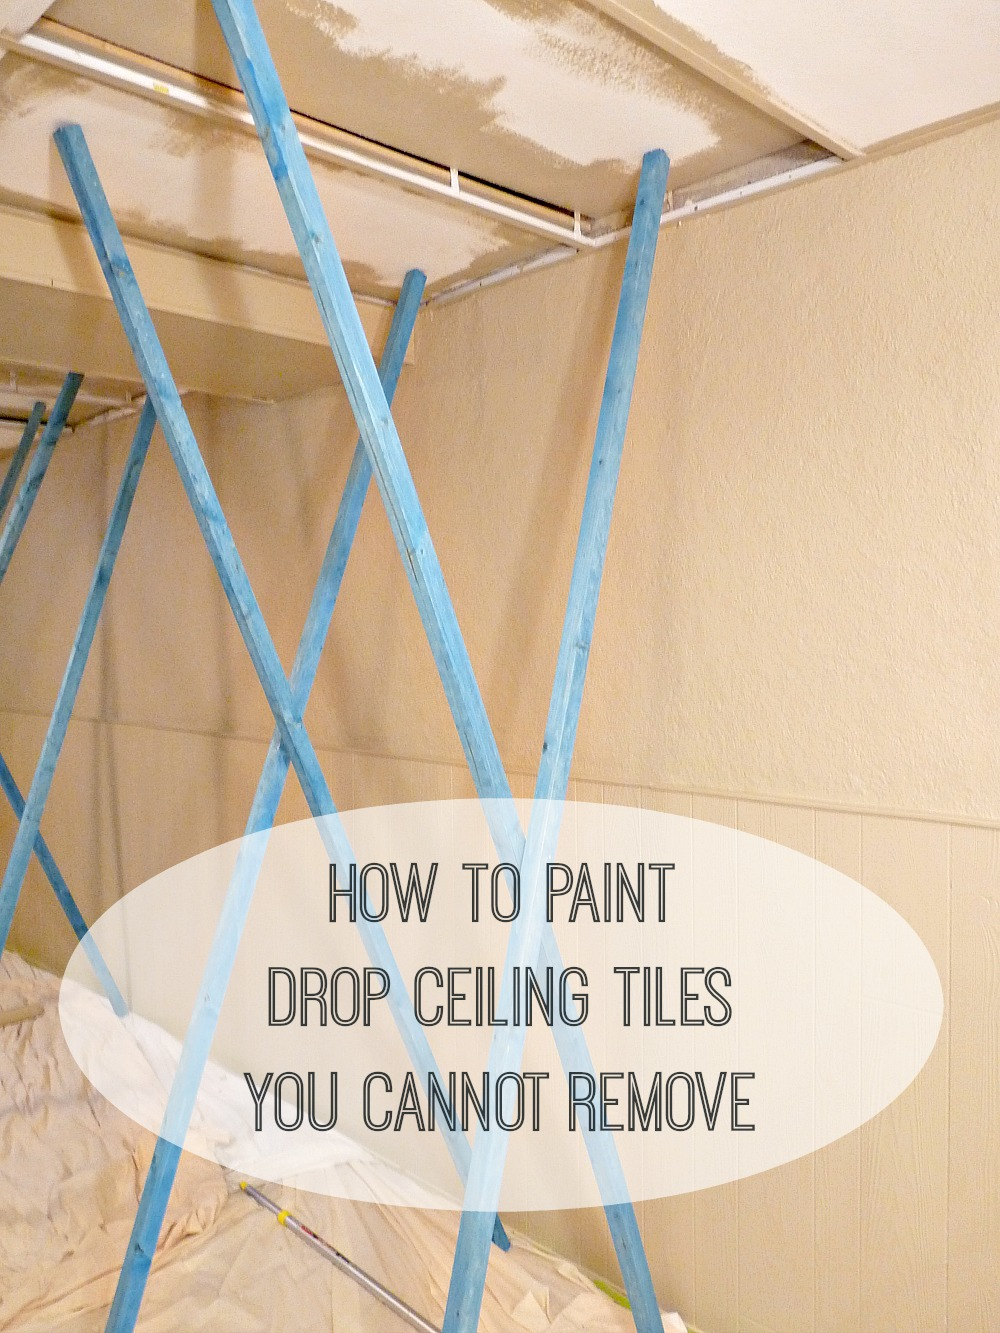 Basement update how to paint drop ceilings you cannot remove dans quick tip for painting ceiling tiles you cannot remove dailygadgetfo Image collections